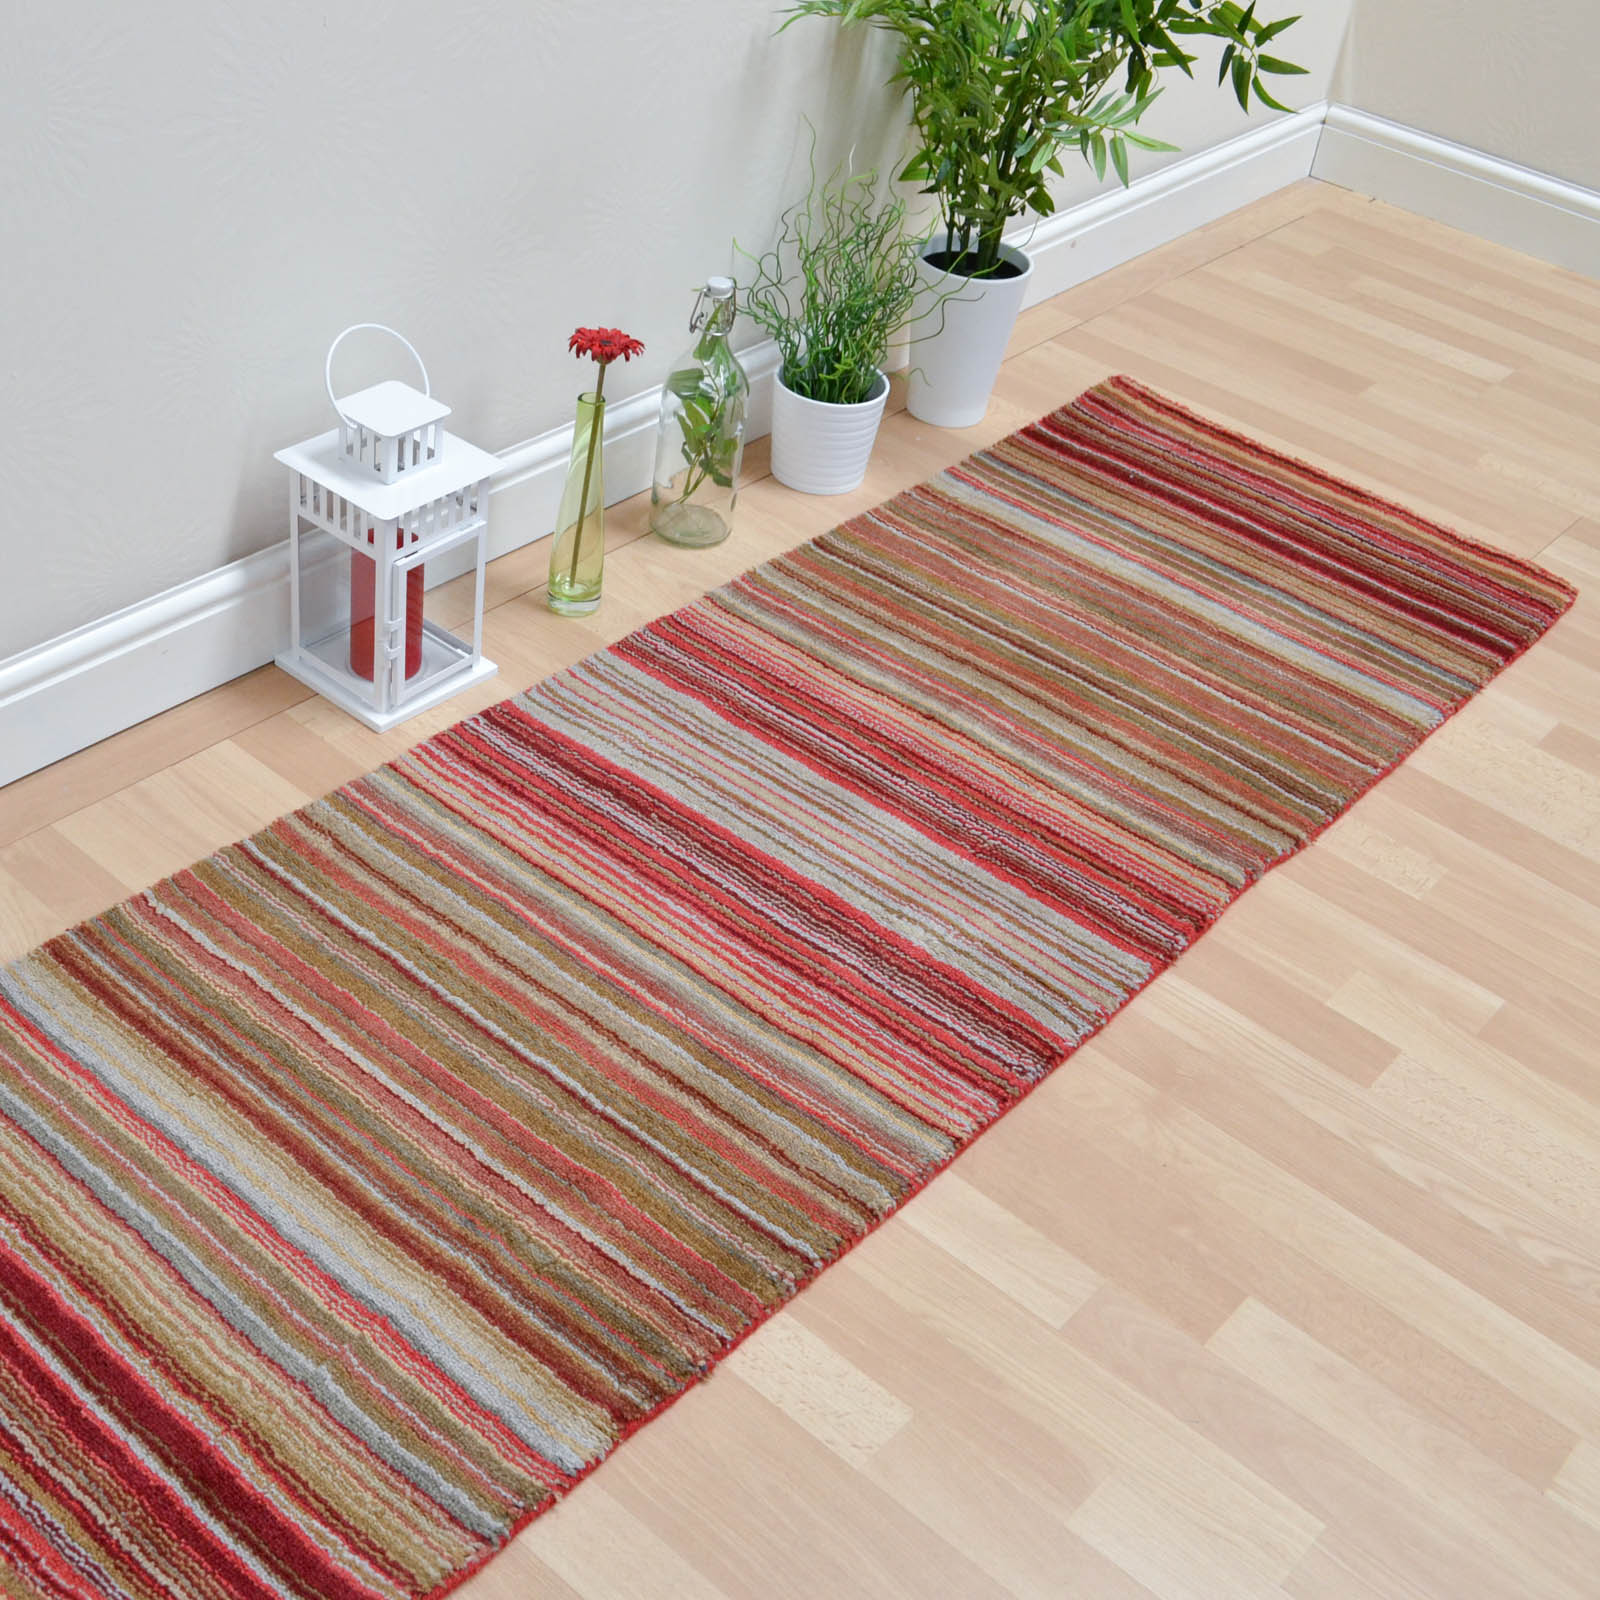 Pimlico Hallway Runners The Rug Seller Ltd Free Uk Delivery